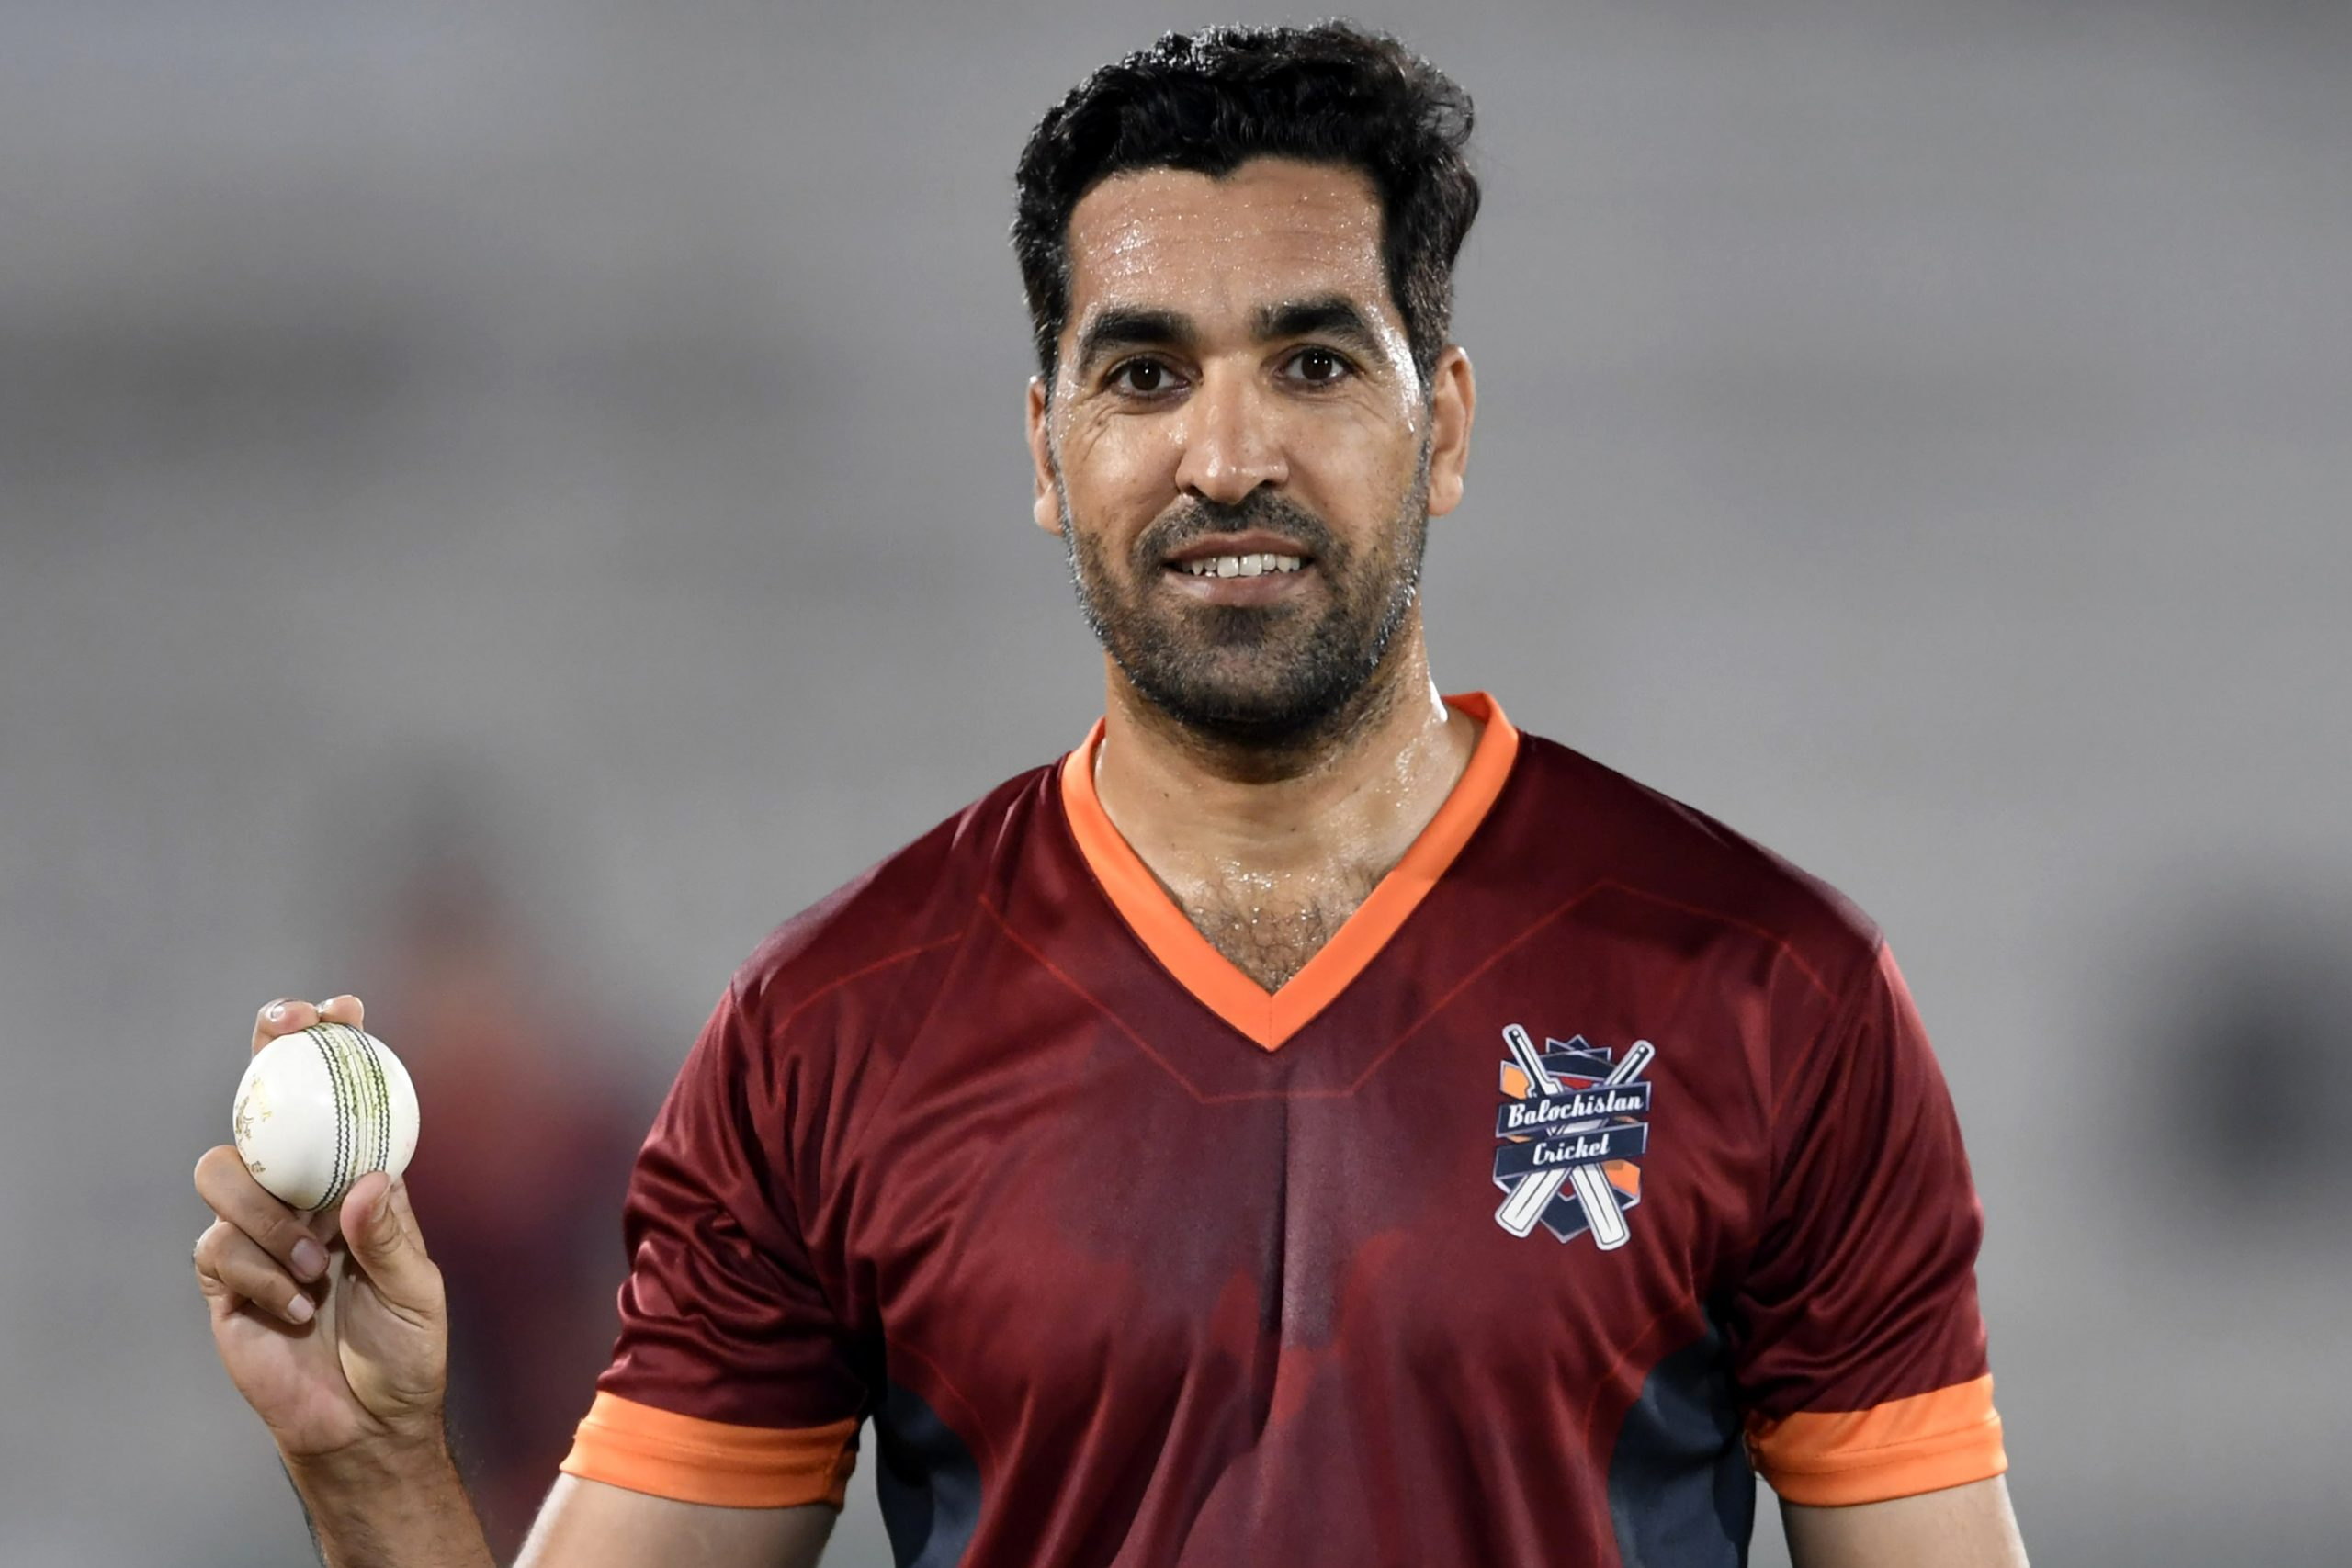 In this picture taken on October 16, 2020 Pakistani cricketer Umar Gul holds a ball before the start of a match during the National T20 Cup in Rawalpindi. - Pakistan bowler Umar Gul, who earned the nickname 'Gul-dozer' for his rattling of stumps, has called time on his 17-year cricket career. (Photo by Aamir QURESHI / AFP) / TO GO WITH 'cricket-Pak-Gul',FOCUS by SHAHID HASHMI (Photo by AAMIR QURESHI/AFP via Getty Images)